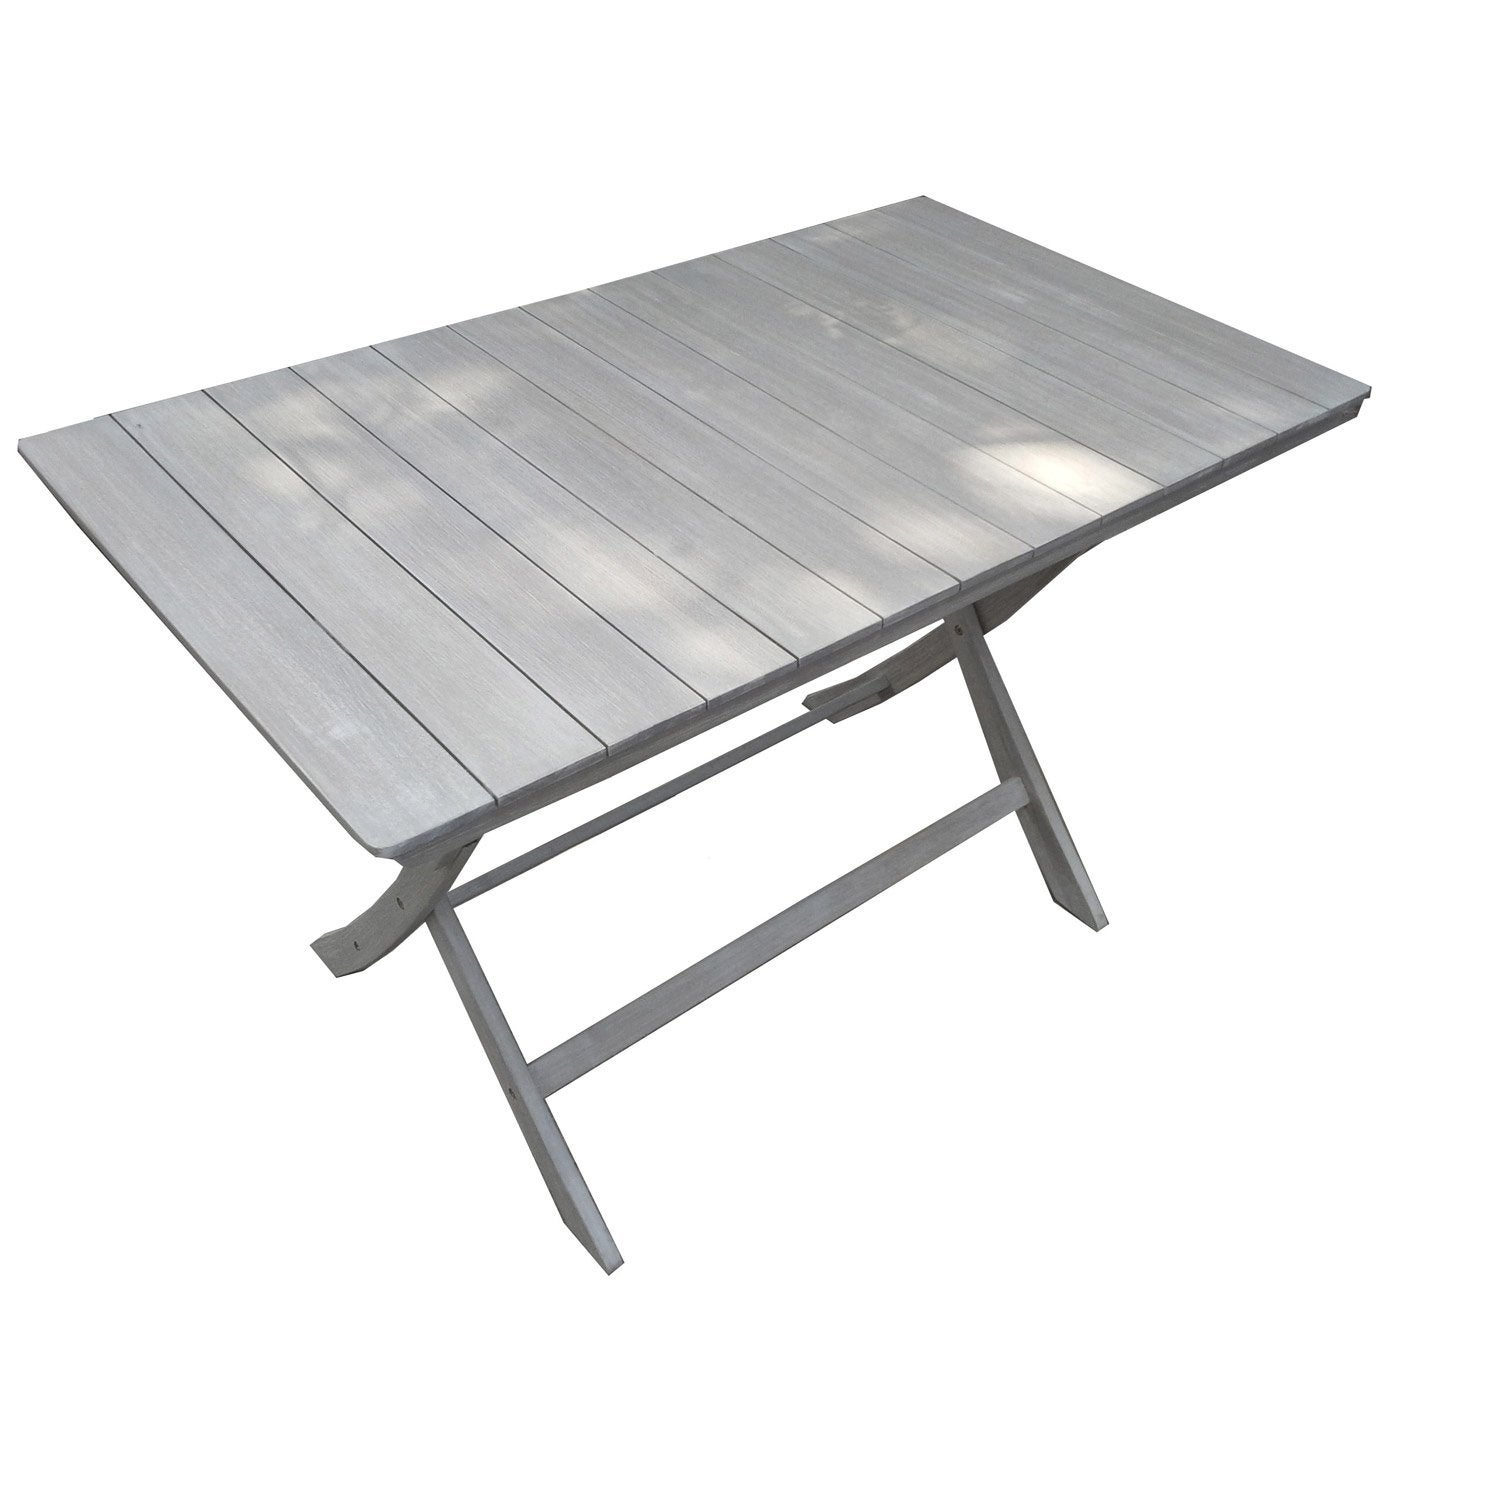 Table De Jardin Naterial Portofino Rectangulaire Gris 4